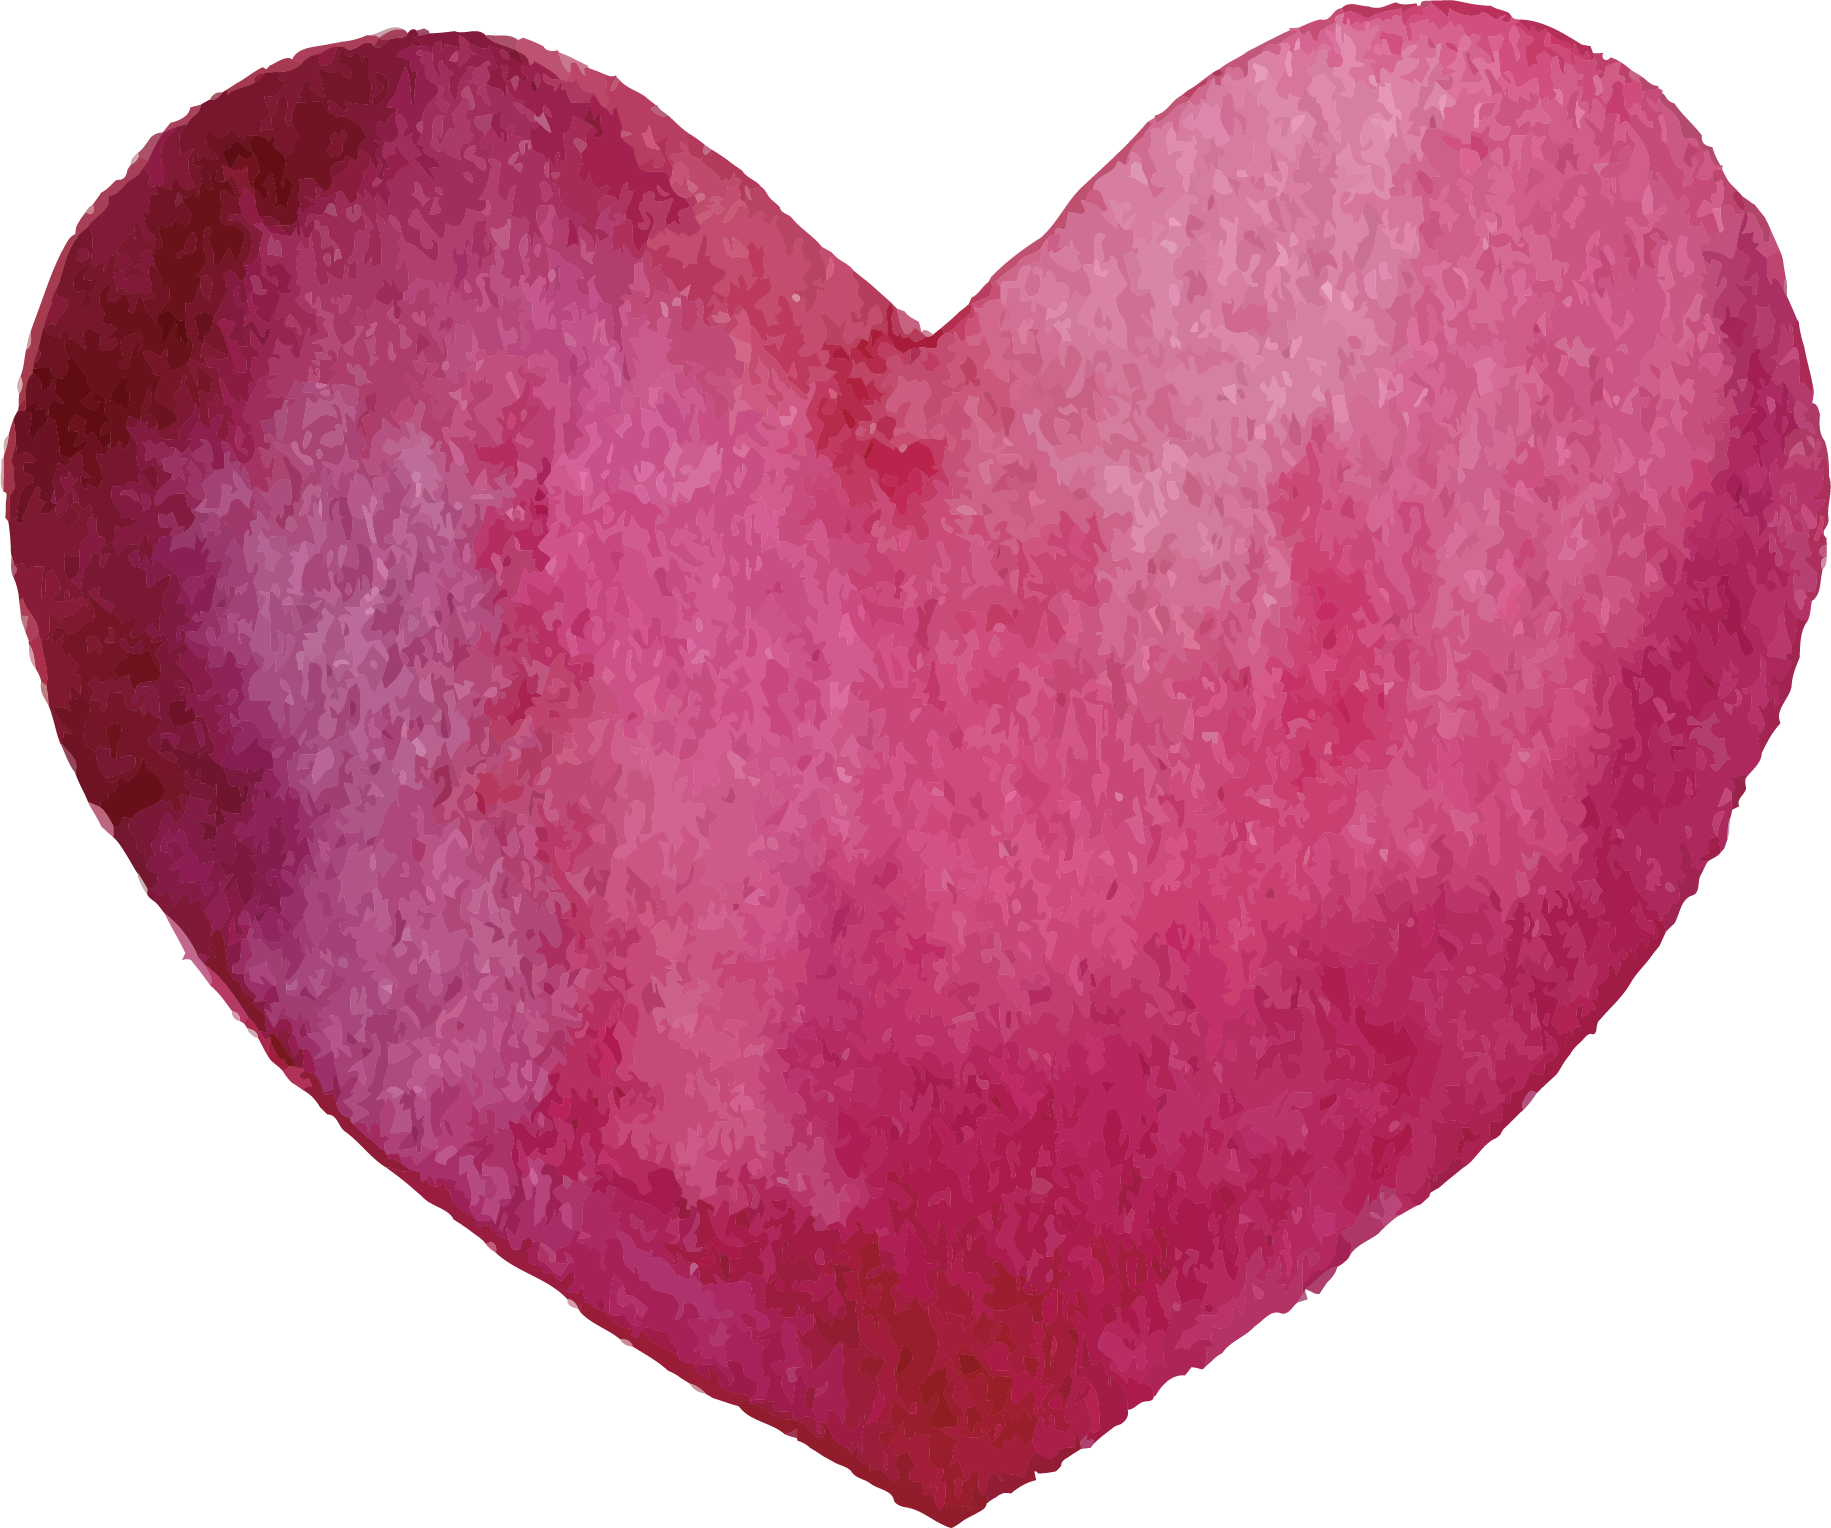 Dark purple heart clipart freeuse stock Pink Heart Drawing at GetDrawings.com | Free for personal use Pink ... freeuse stock